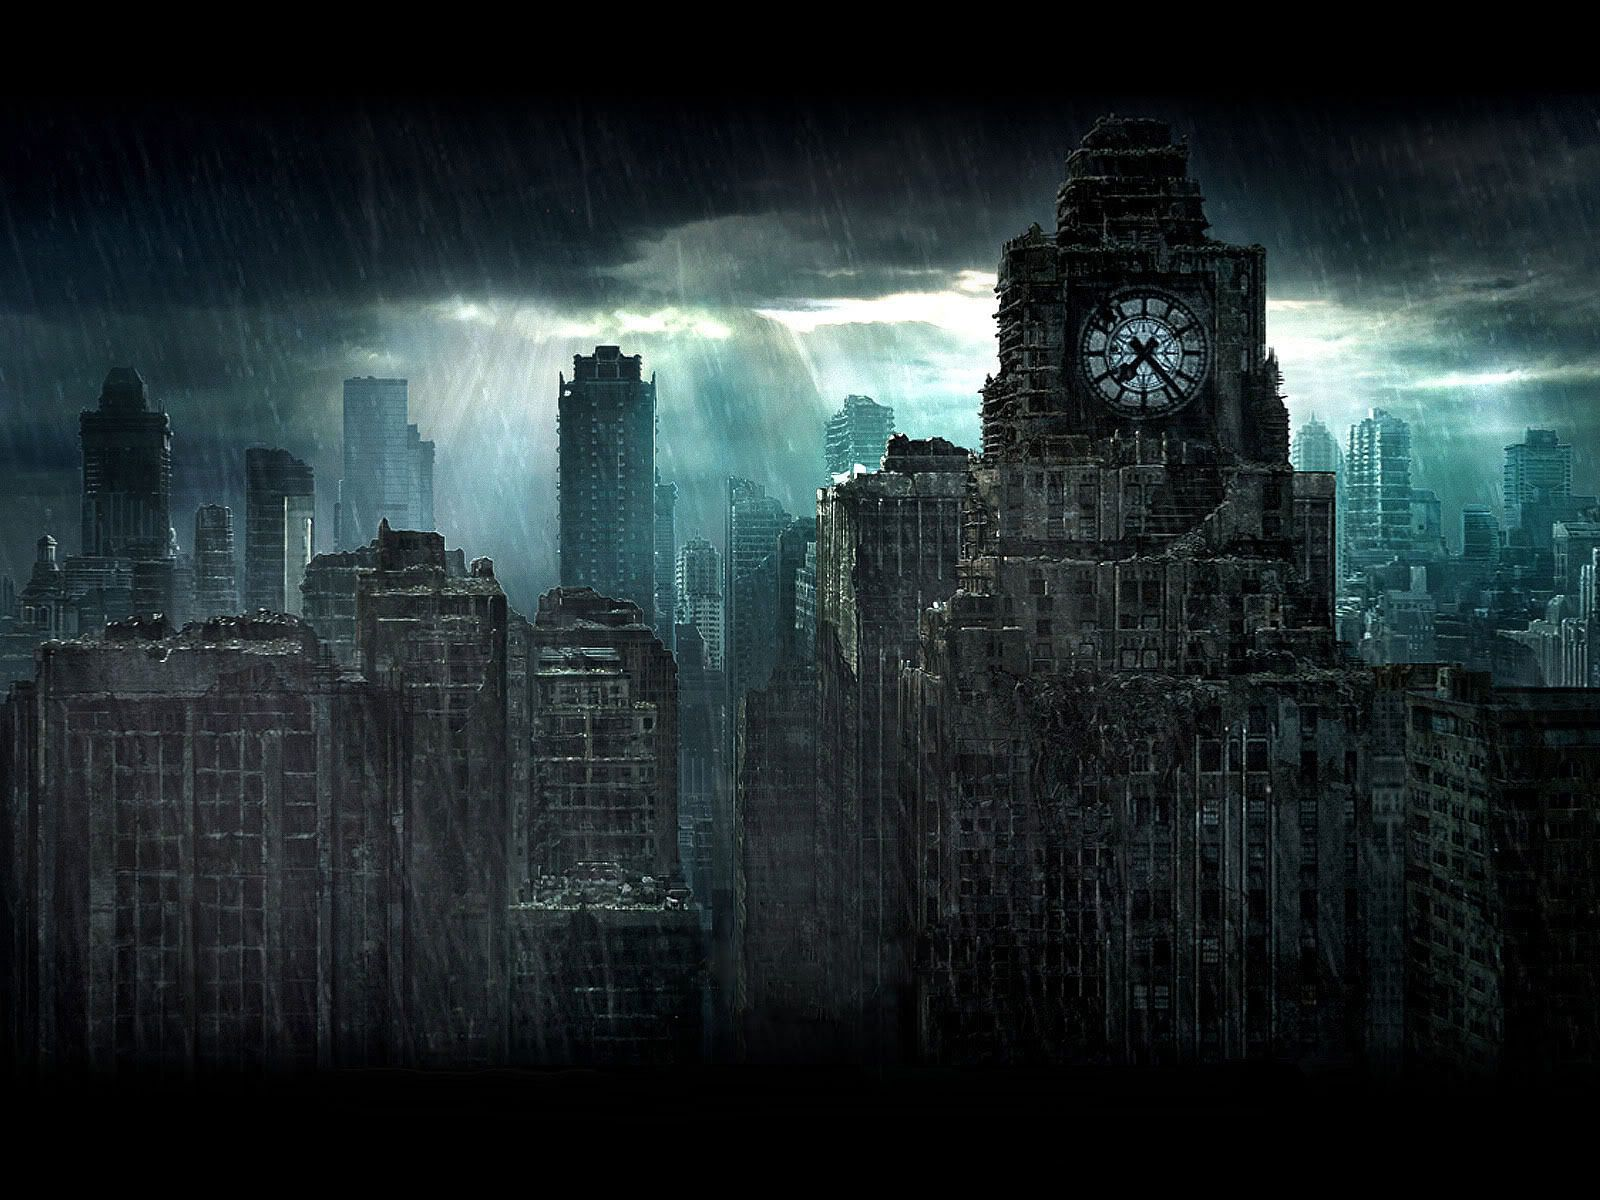 Gotham City Images Background Hd 2 Drawing tutorials Post 1600x1200